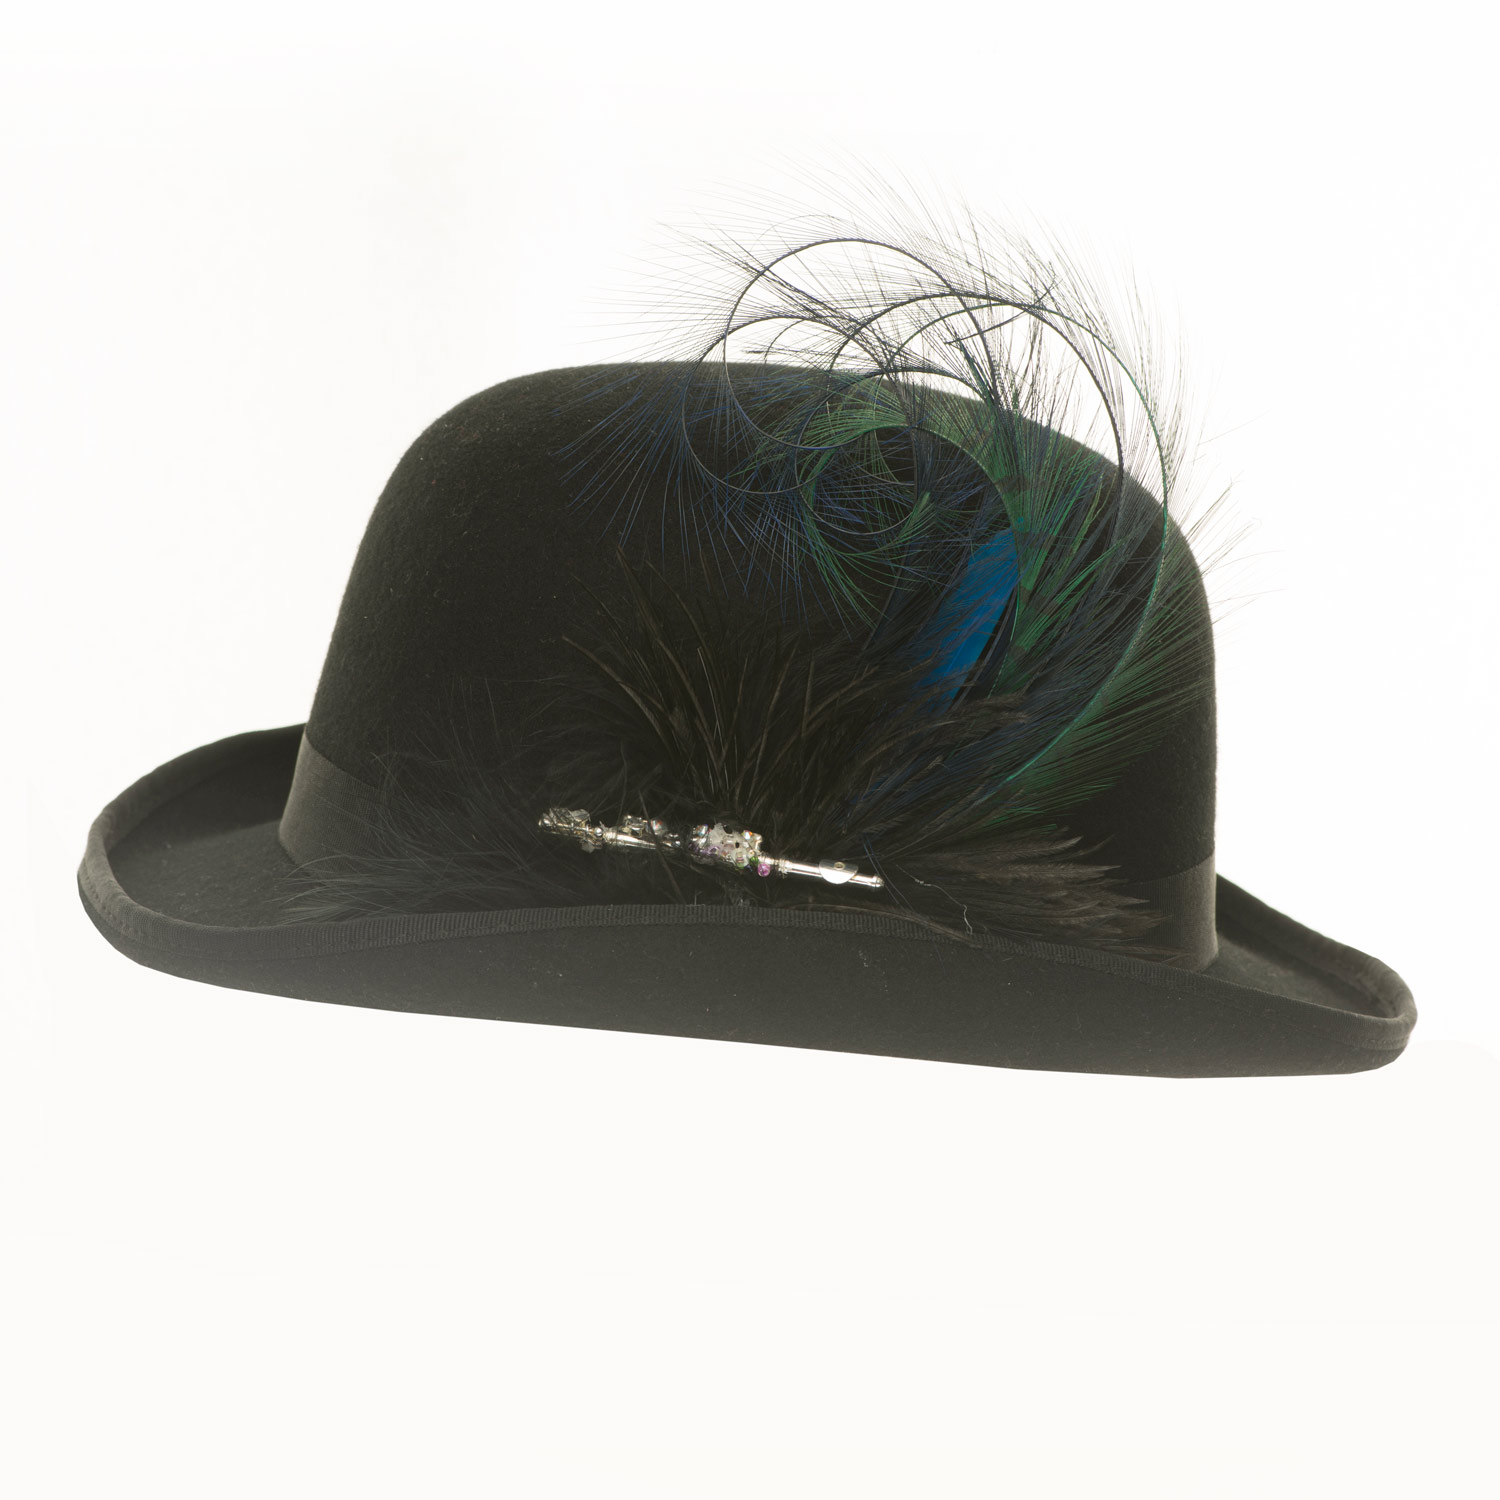 BOWLER HAT WITH BURNT FEATHERS